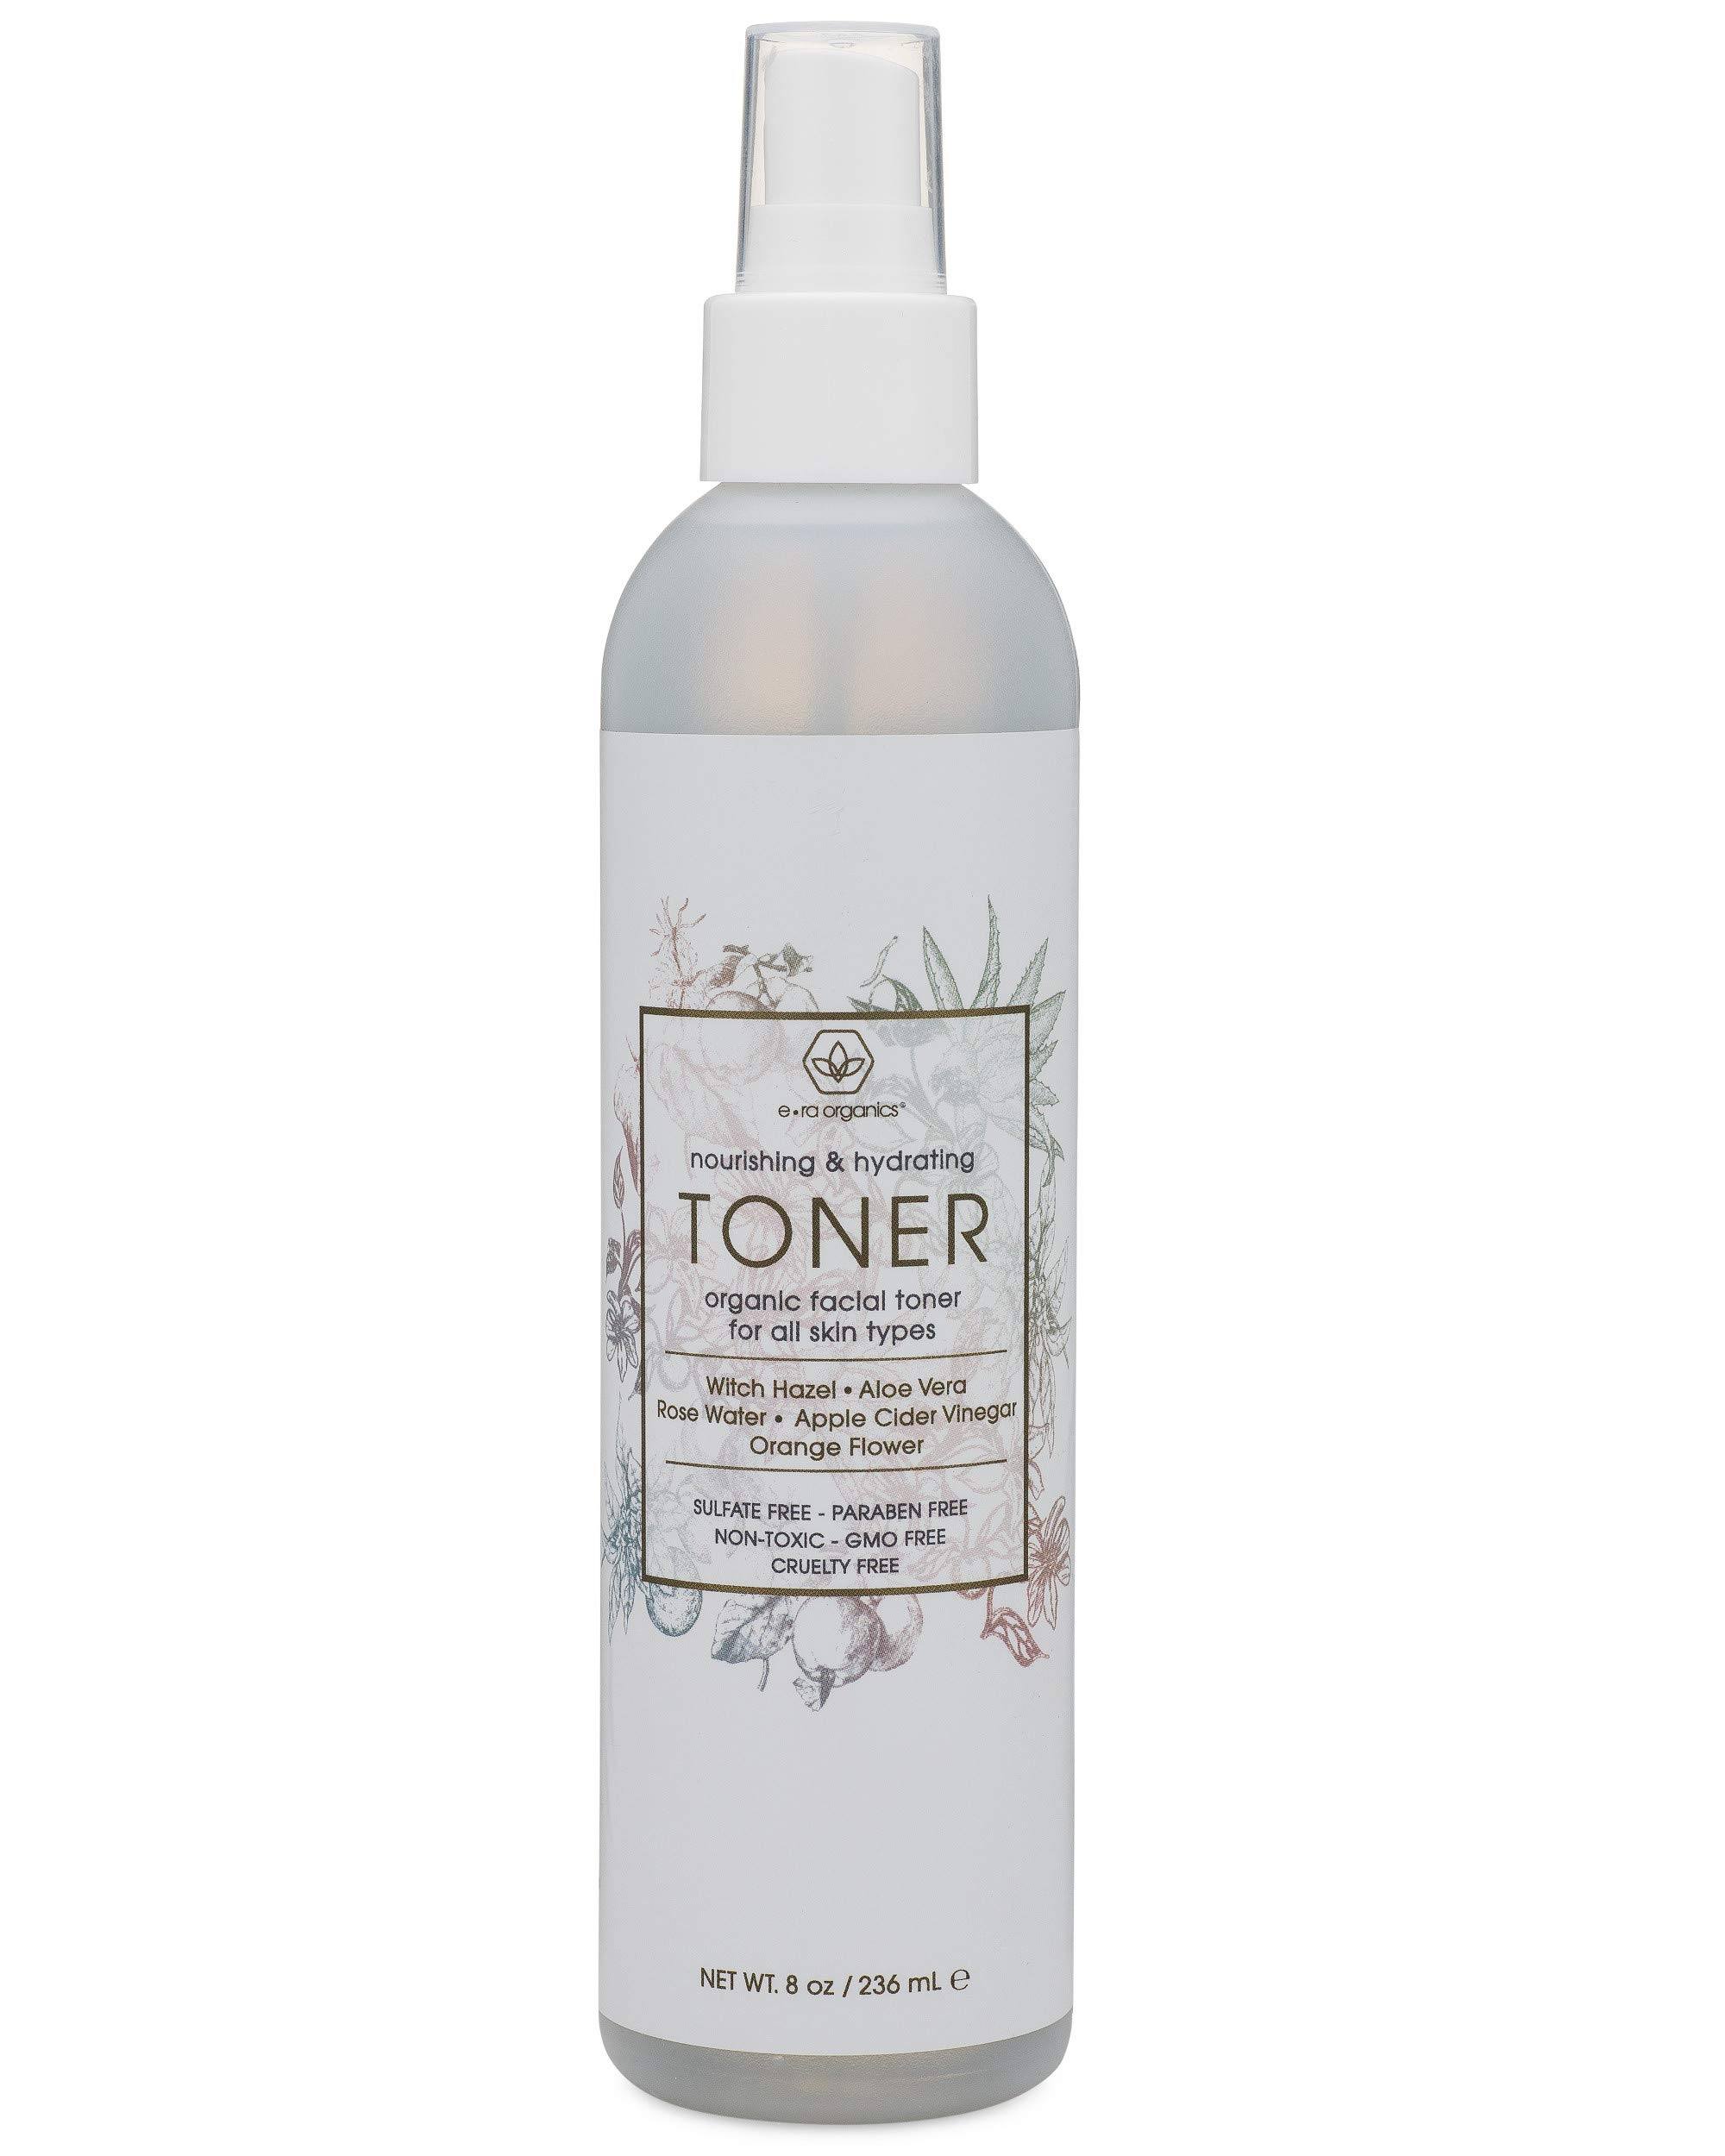 Facial Toner & Organic Face Mist - Extra Nourishing & Hydrating Natural Facial Mist with Witch Hazel, Apple Cider Vinegar, Rose Water for Dry, Oily, Acne Prone Skin. Balance pH, Nourish & Moisturize